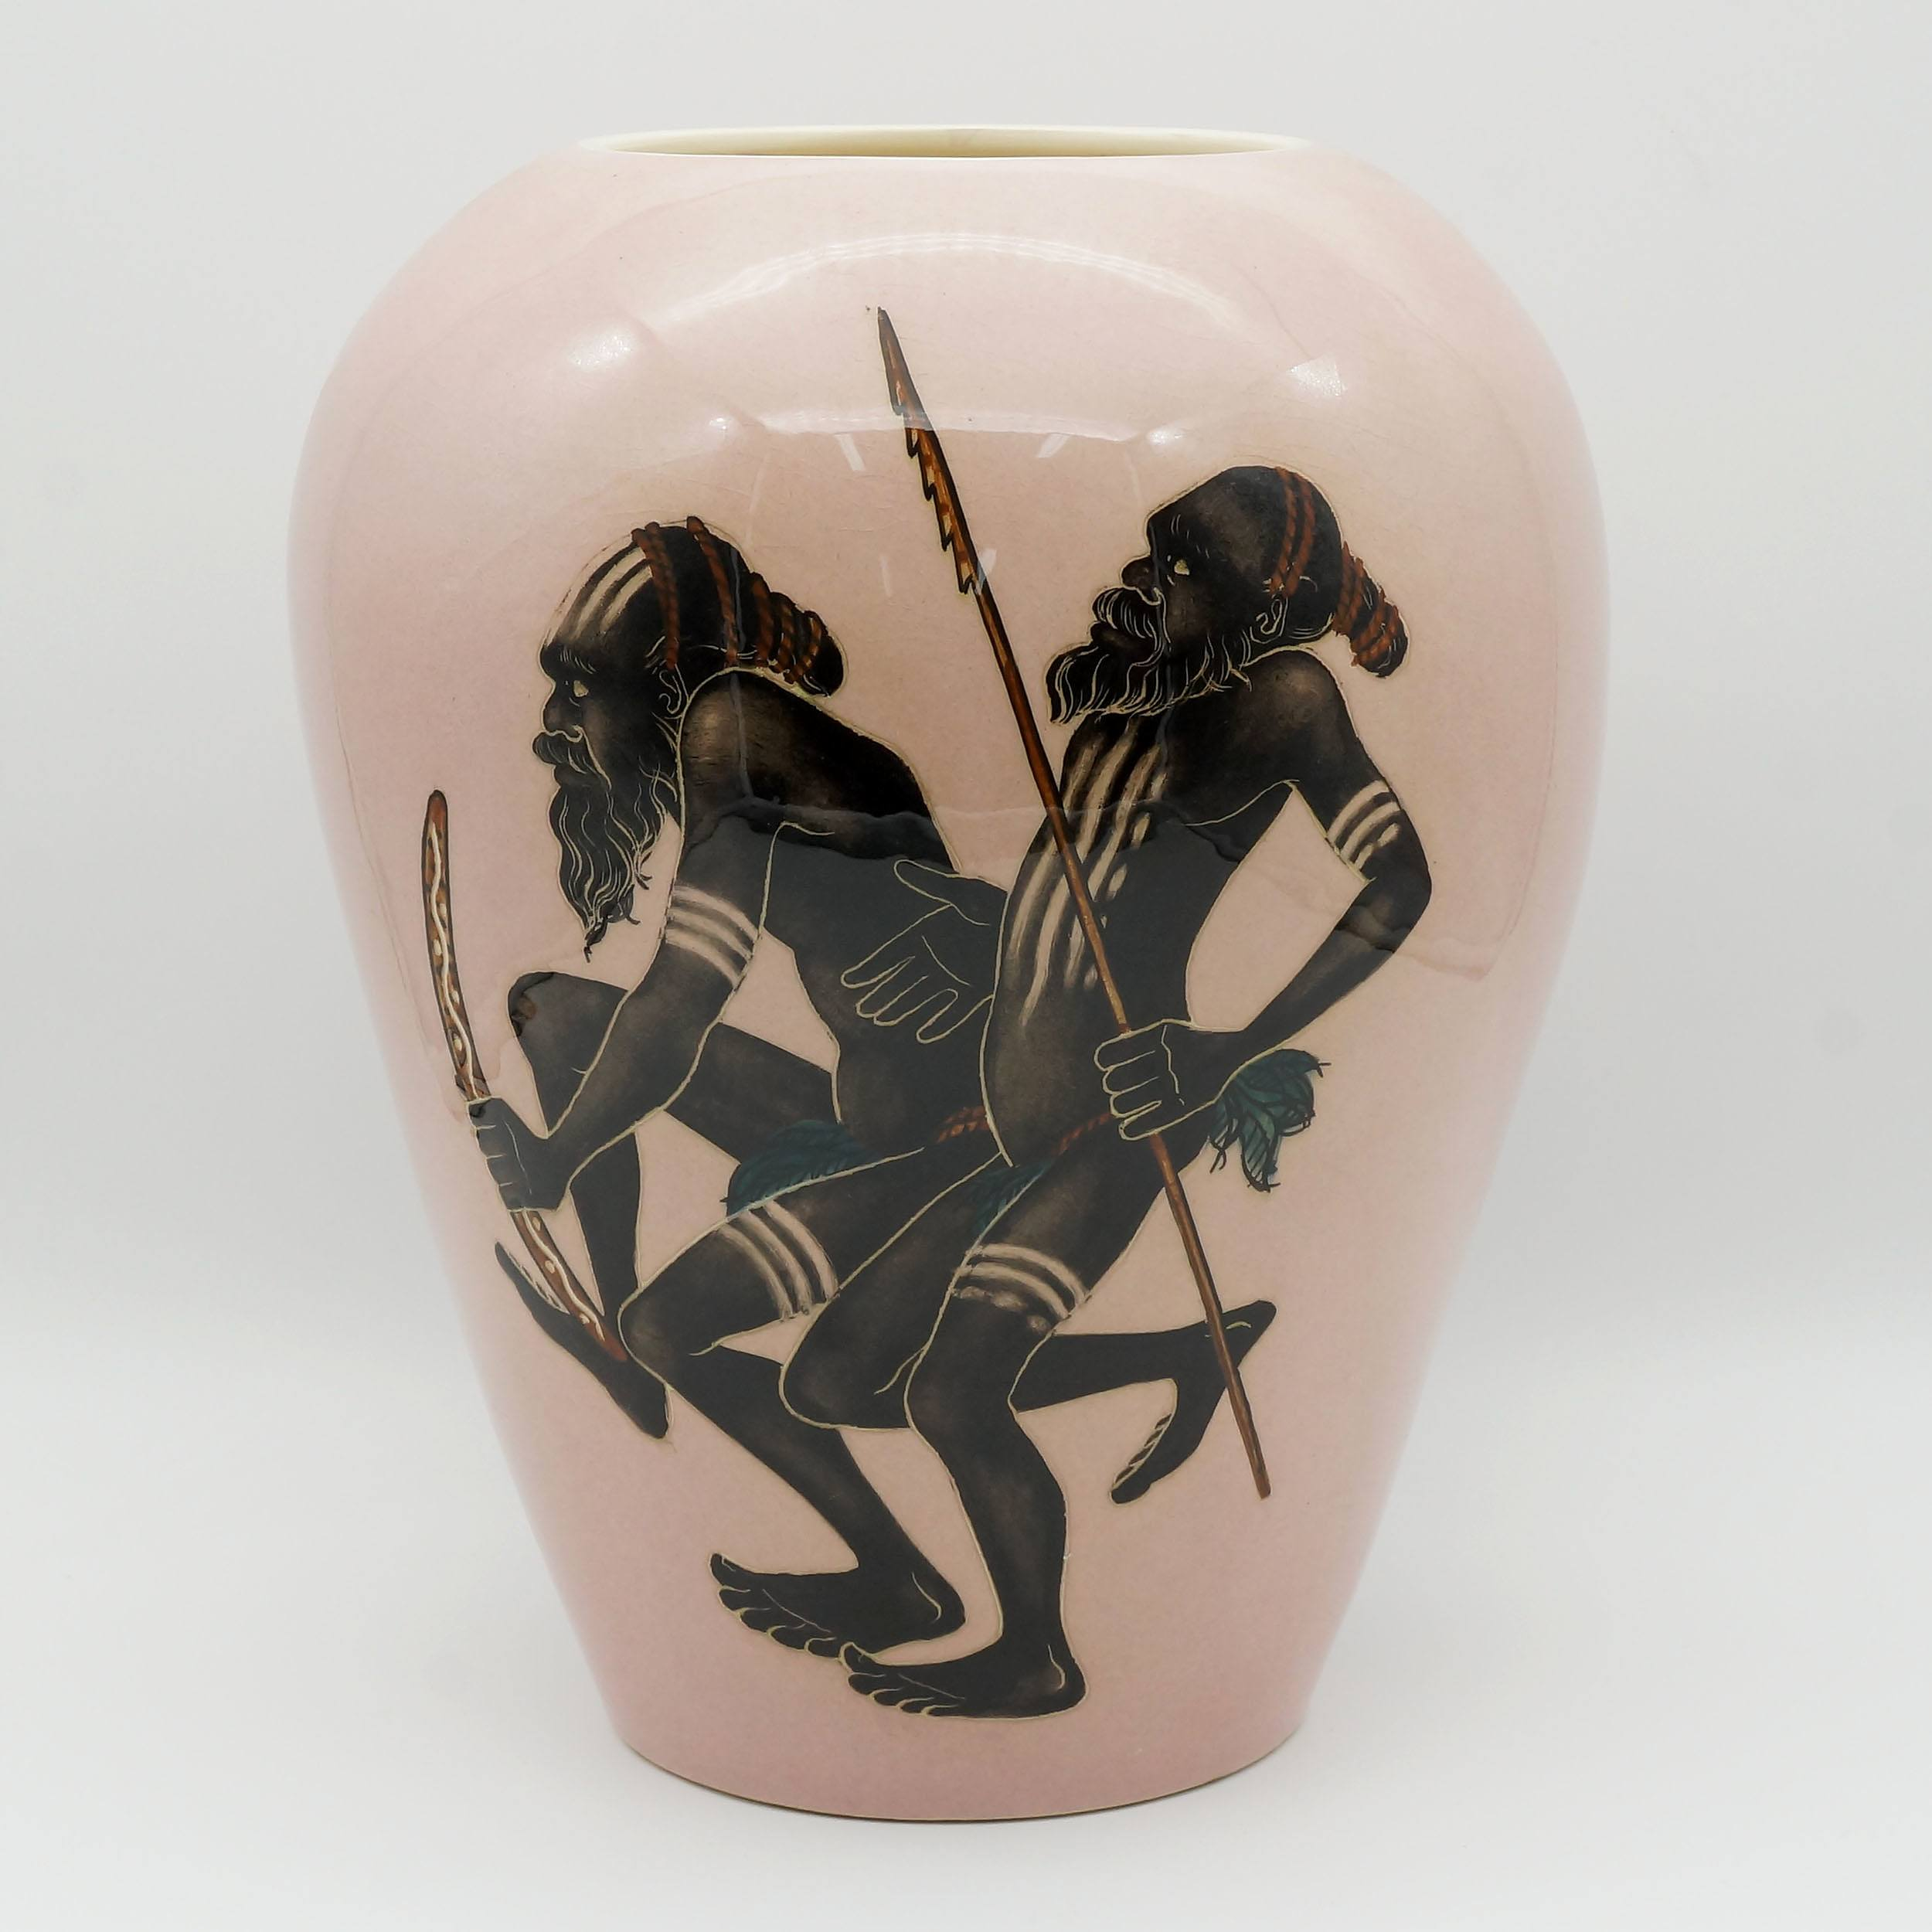 'Large Martin Boyd (1923-88) Vase with Aboriginal Motif'